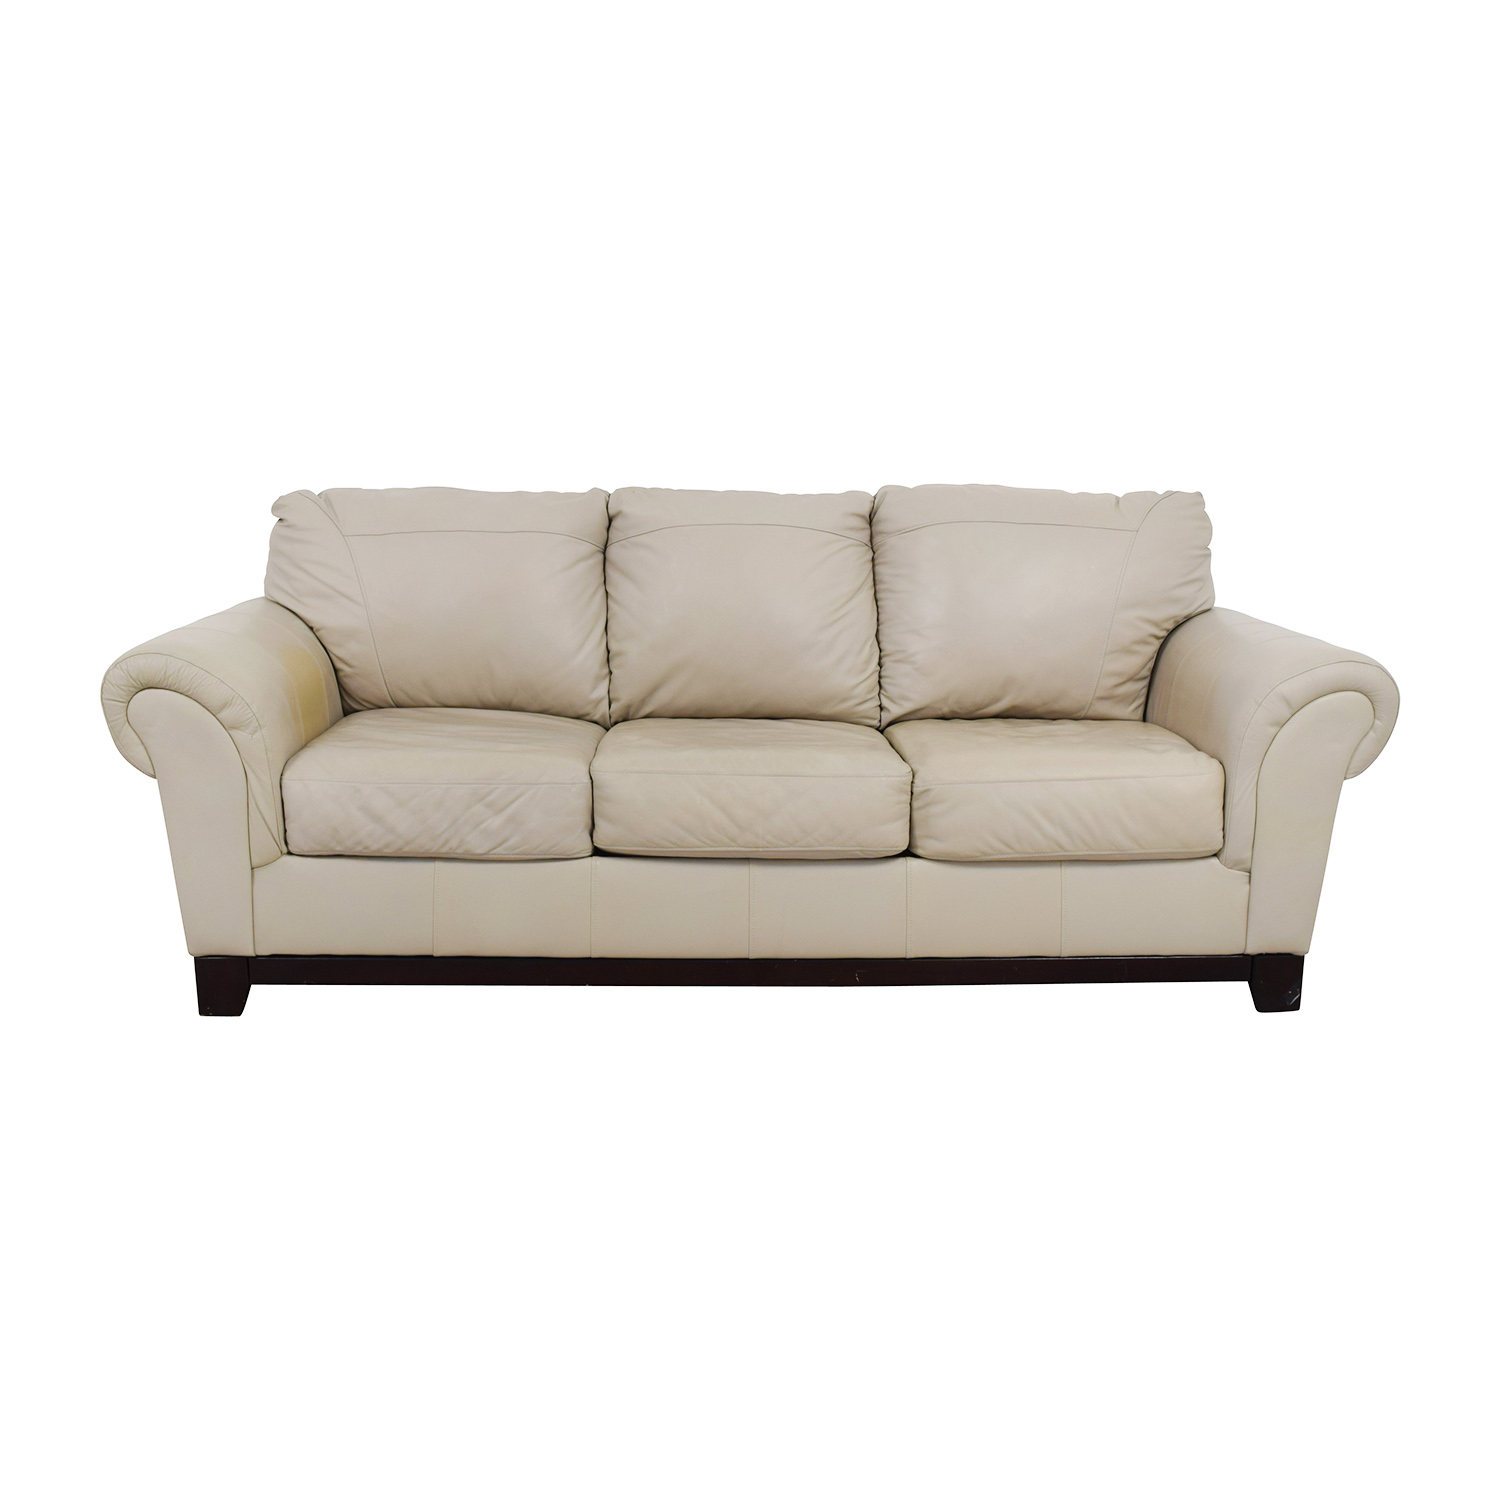 Taupe Leather Couch Sofas ...